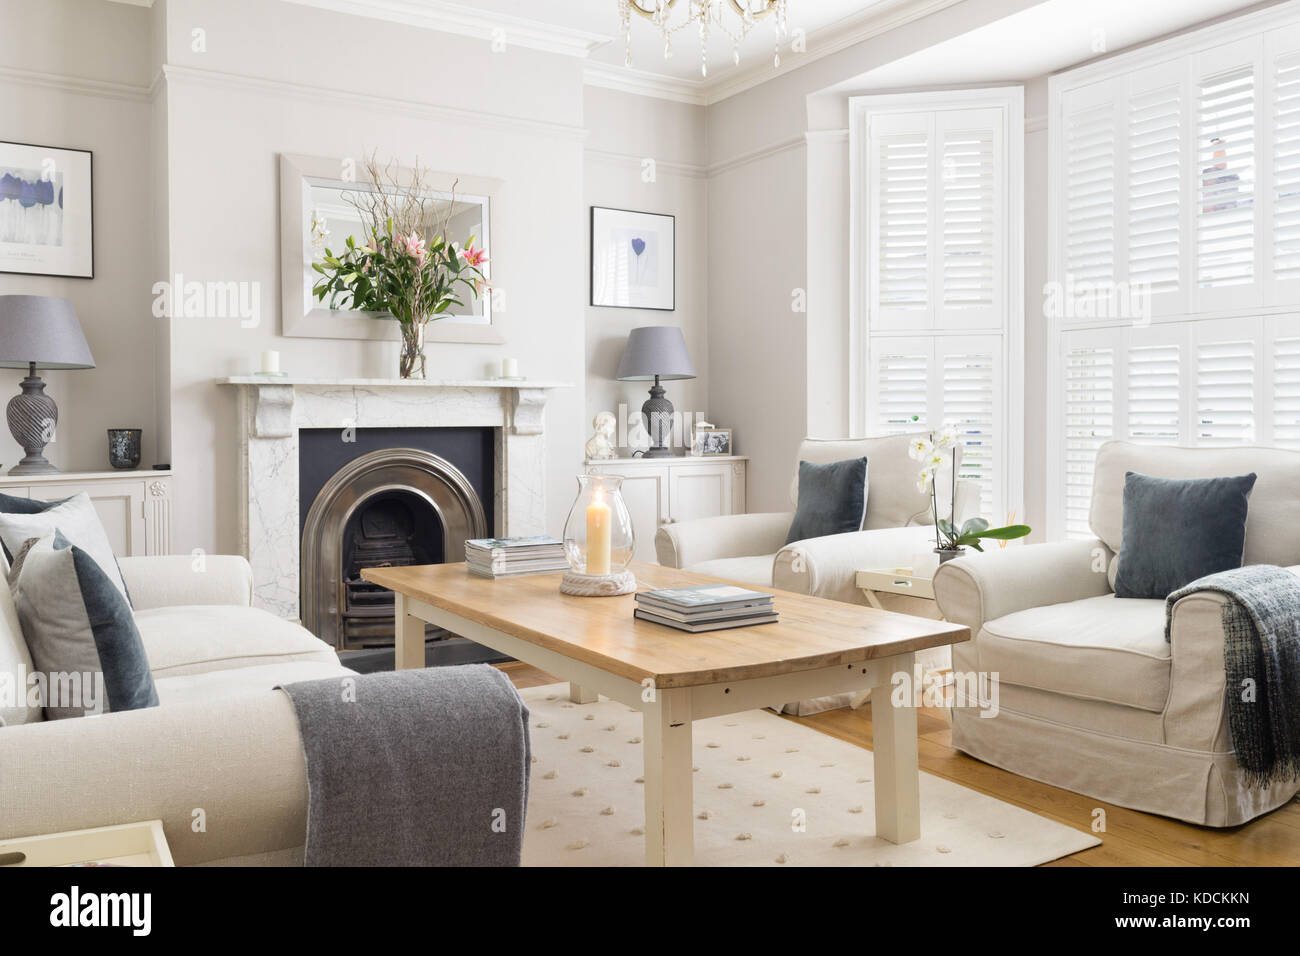 A bright, cotemporary living room space in a Victorian home with comfortable modern furniture, shuttered windows - Stock Image